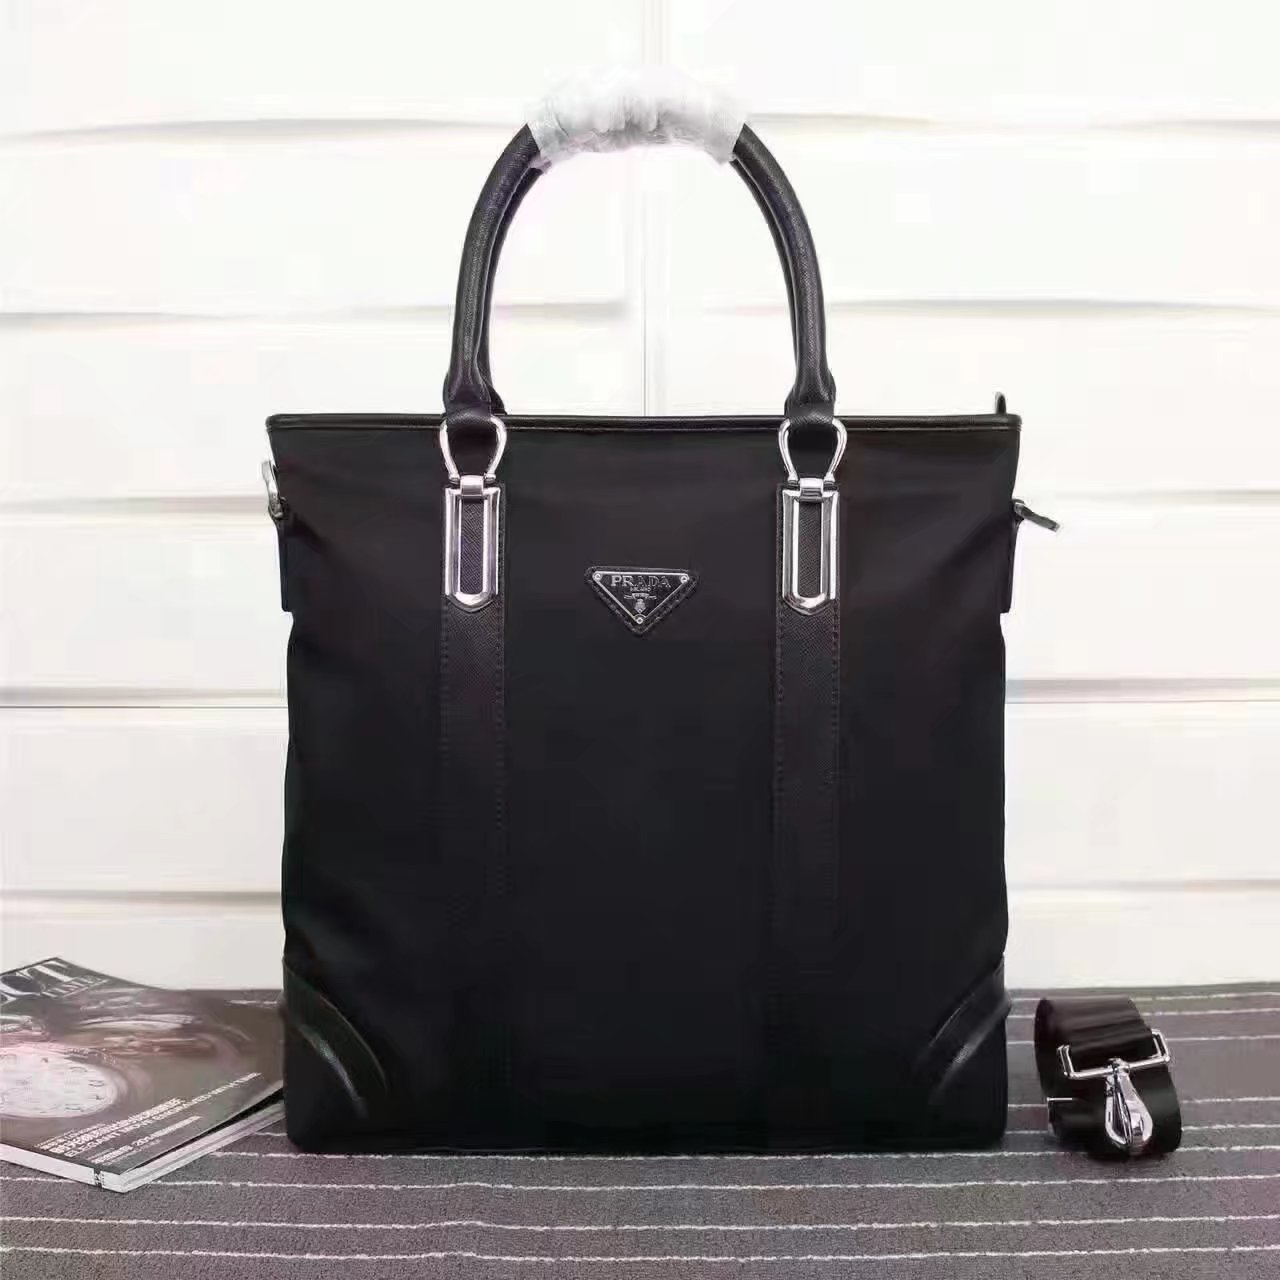 Prada 0017 Men Tote With Saffiano Leather Trim and Handles